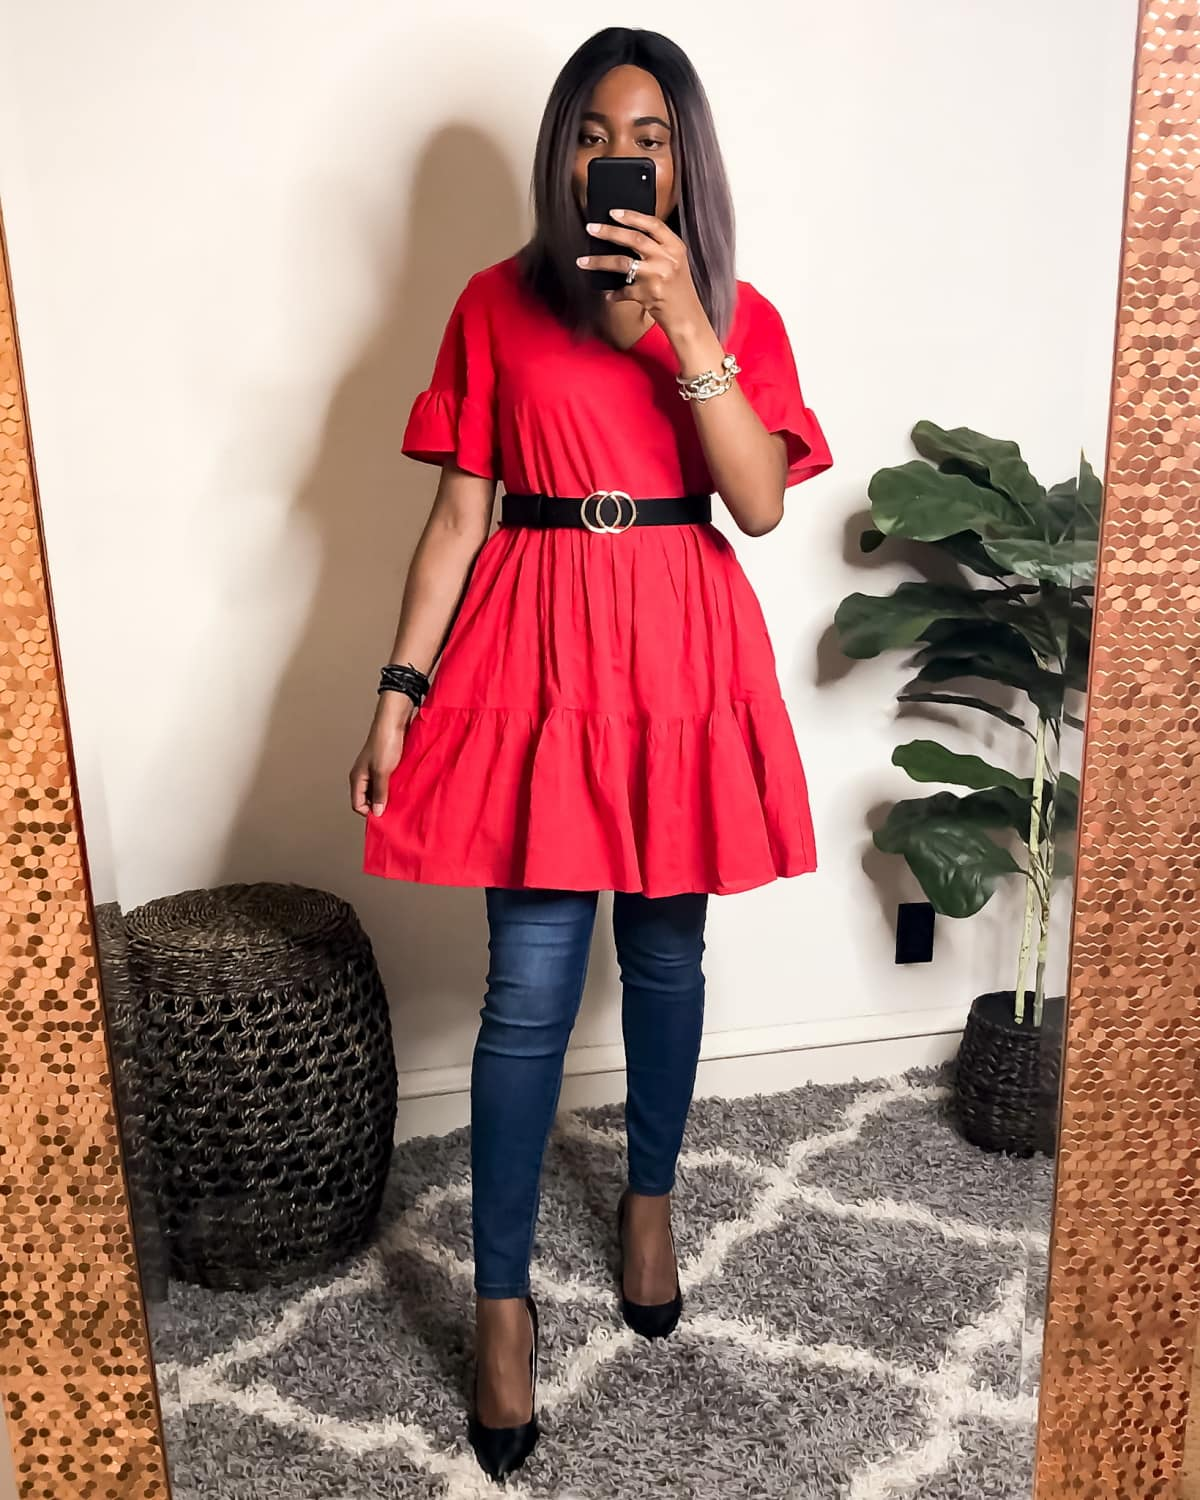 7 Red Dress Outfit Ideas to Steal in 2020 for Different Occasions